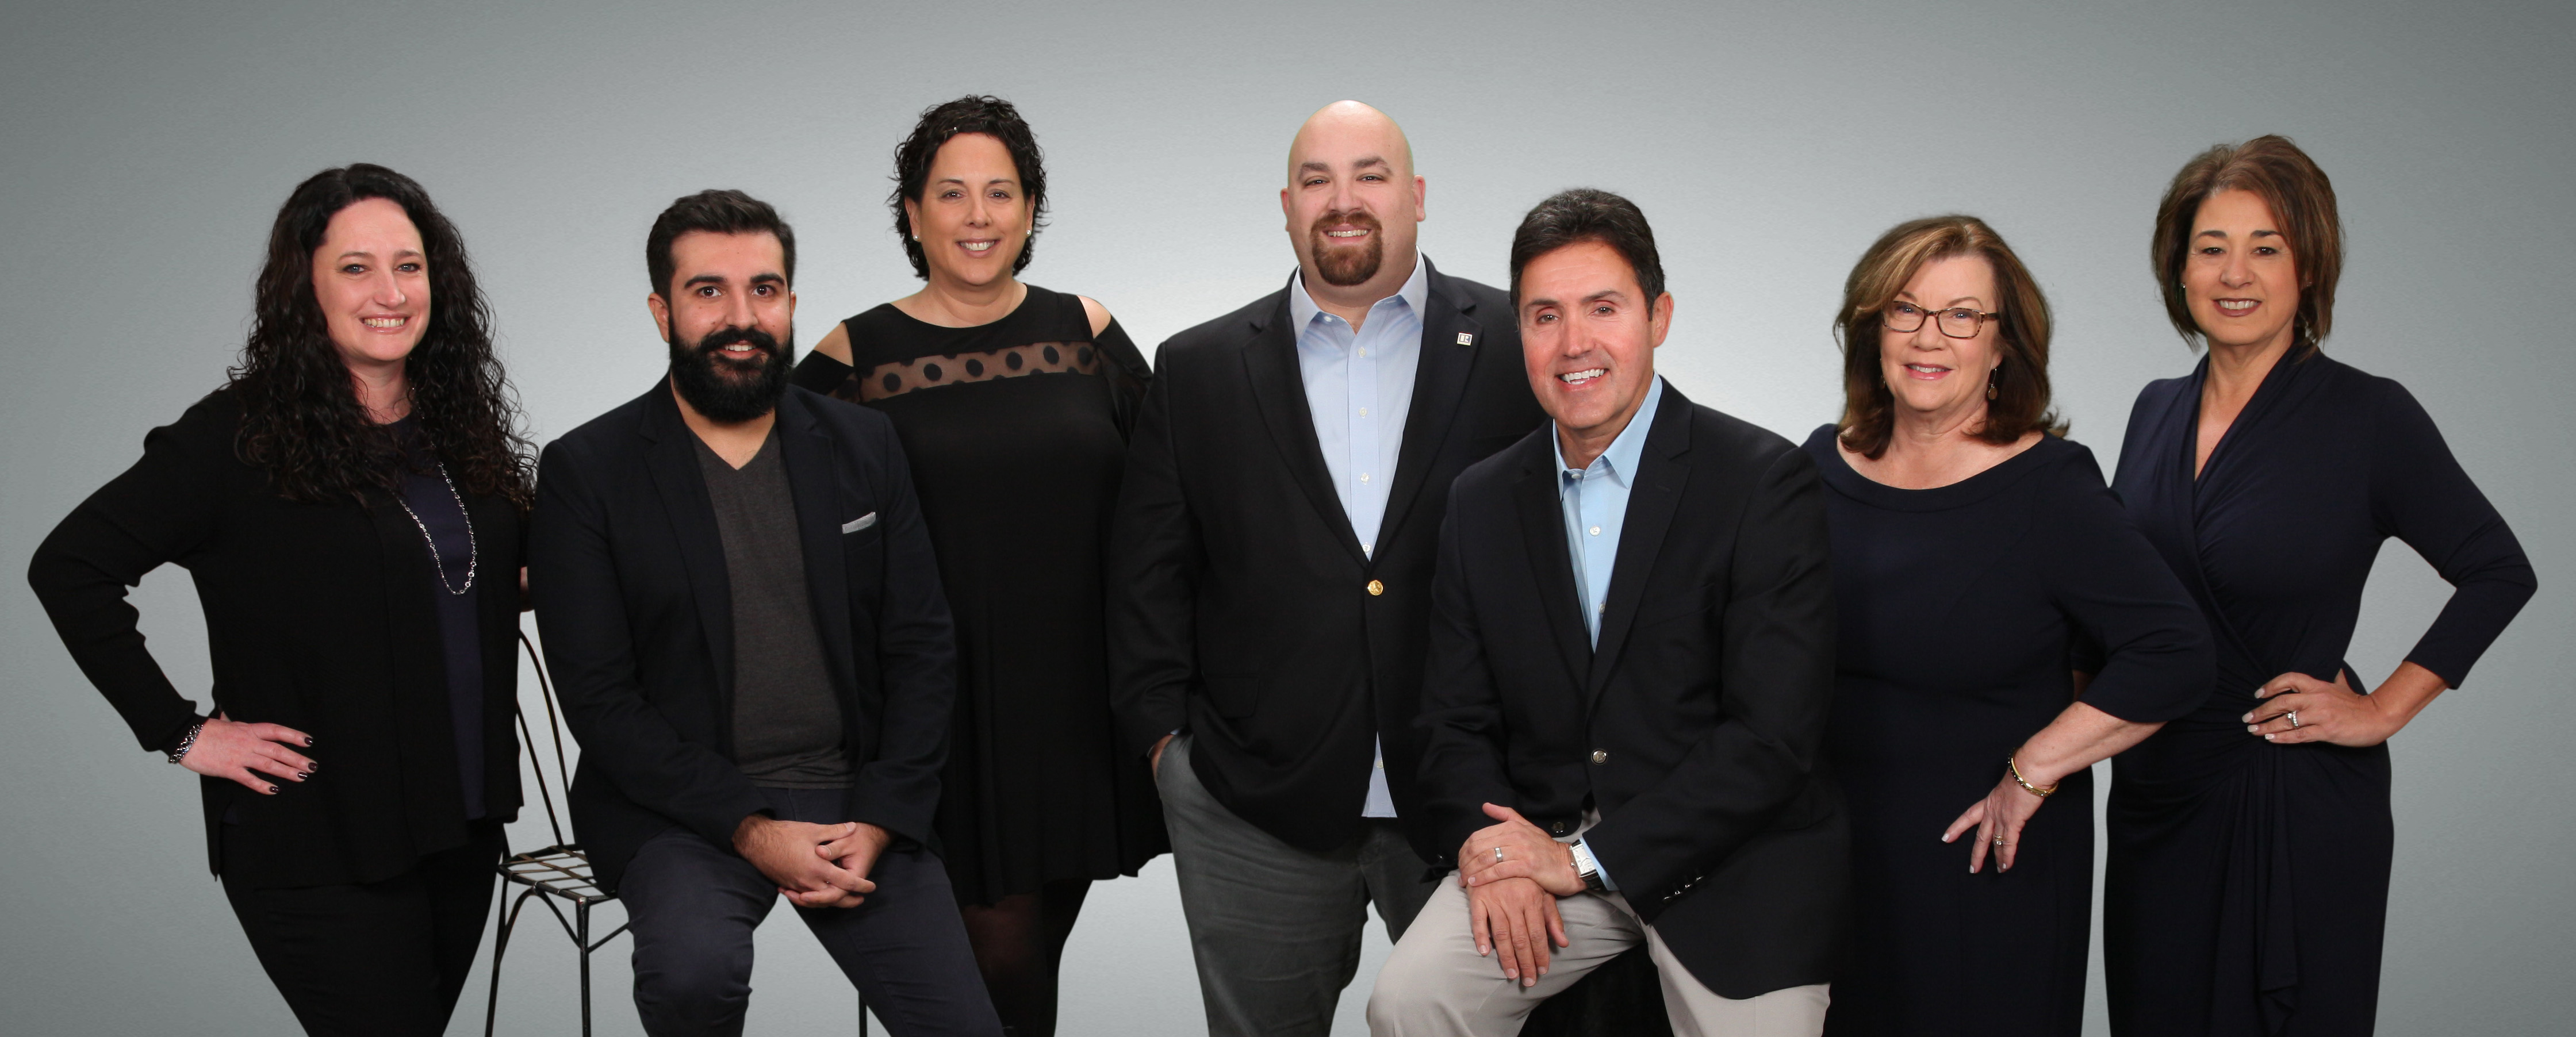 Joshua Lioce Elevates the Real Estate Experience with Exceptional Service Through Lioce Properties Group